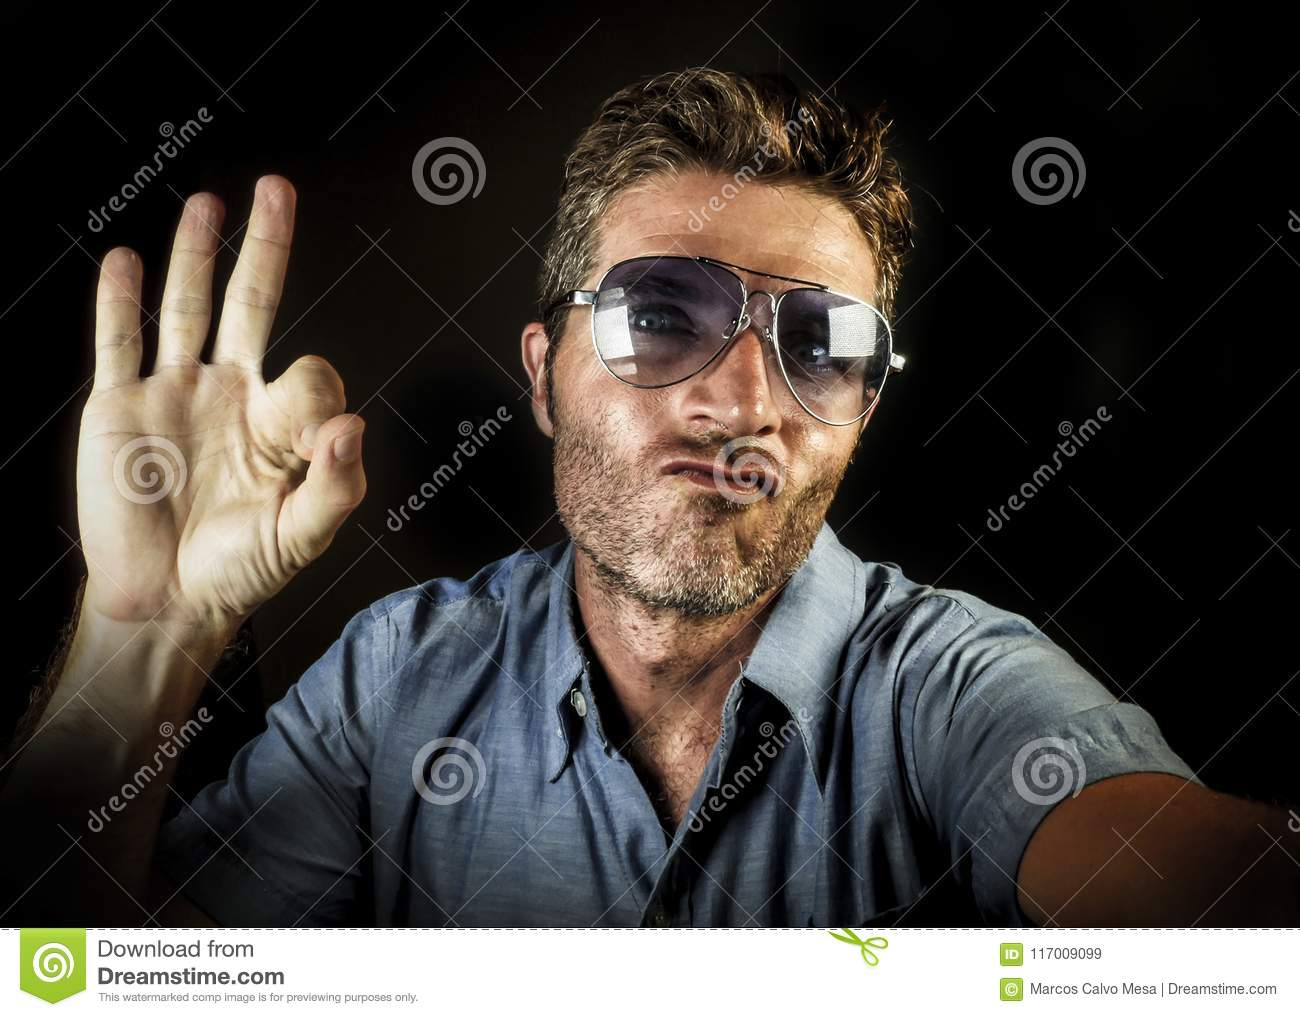 Crazy happy and funny guy with sunglasses and modern hipster look taking selfie self portrait picture with mobile phone camera smi